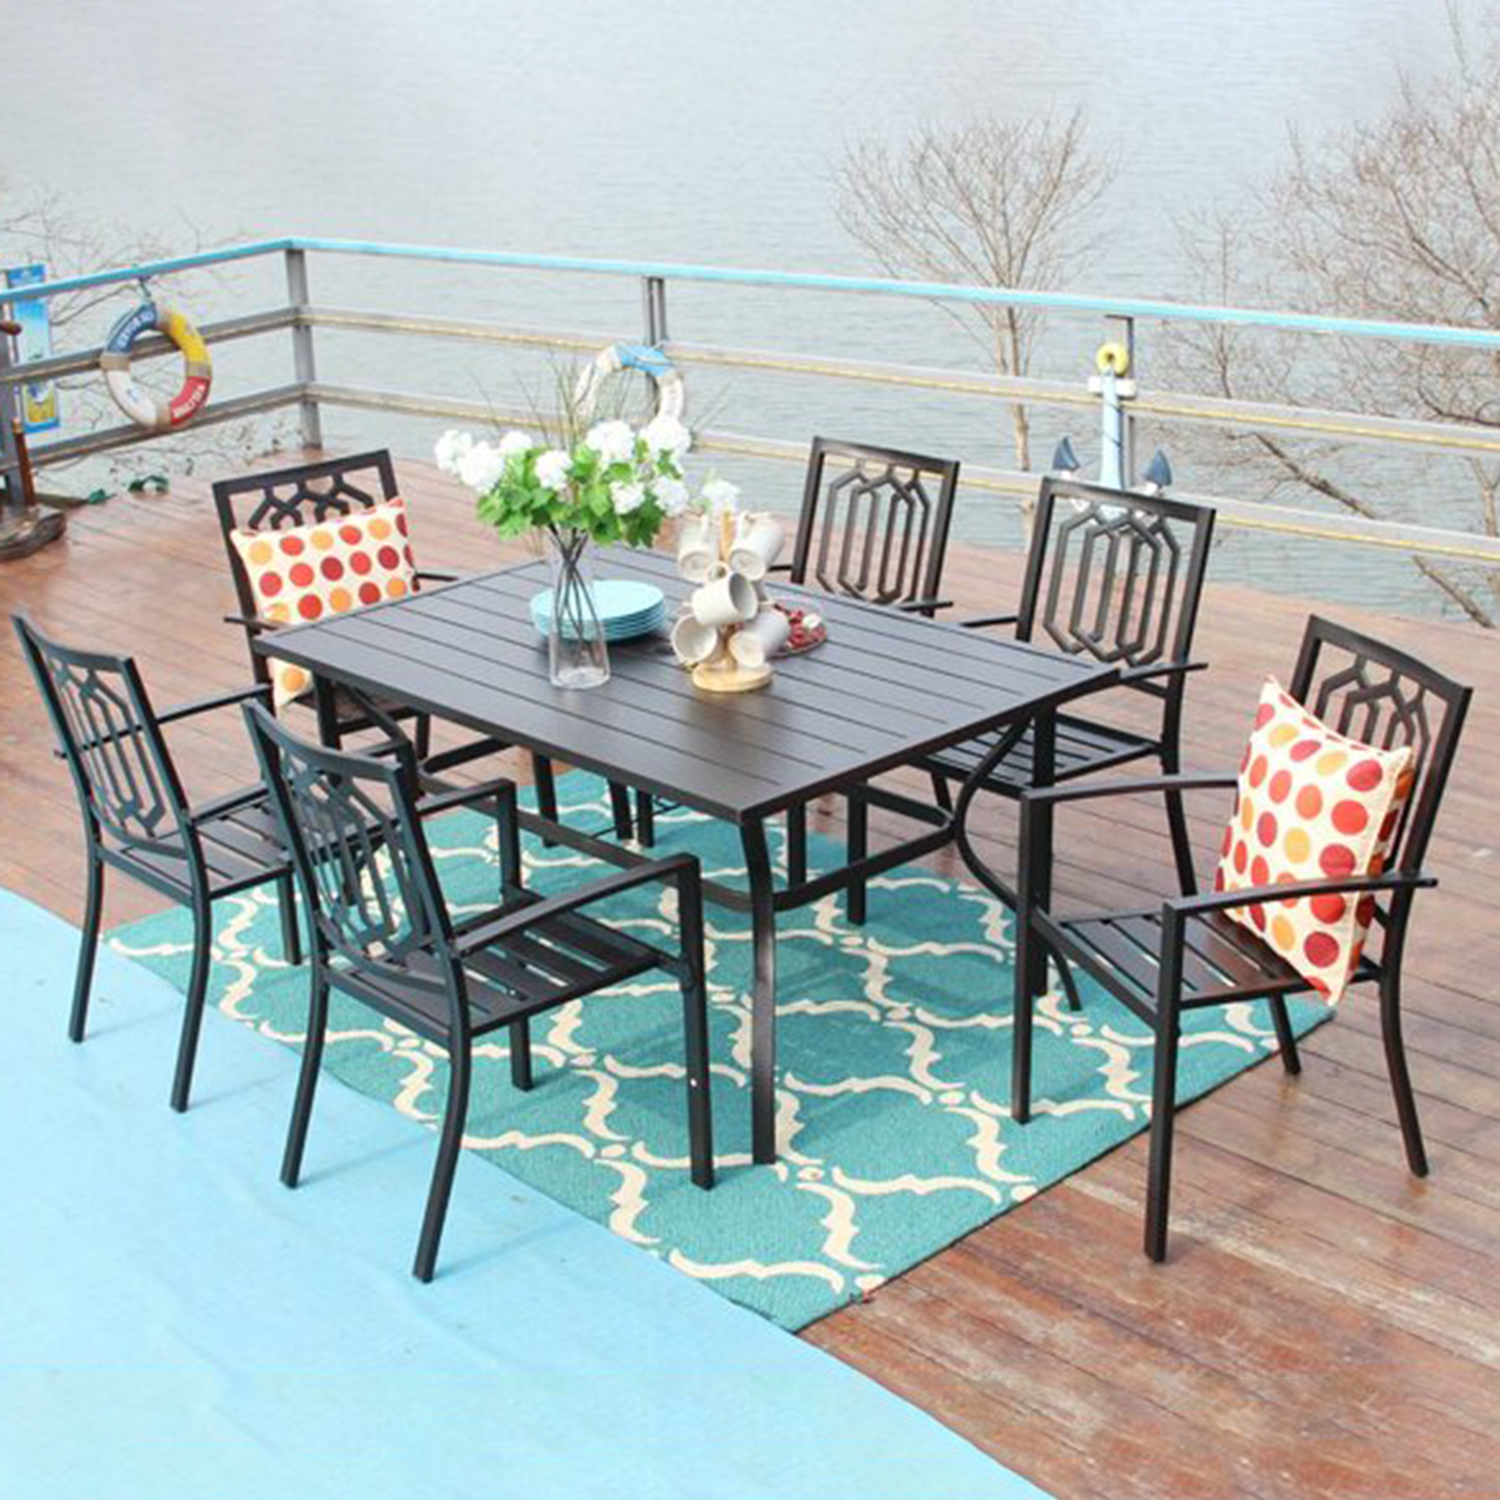 mf studio 7pcs outdoor dining sets metal patio furniture with 6pcs bistro dining chairs and 1pc rectangular dining table suitable for 6 people black